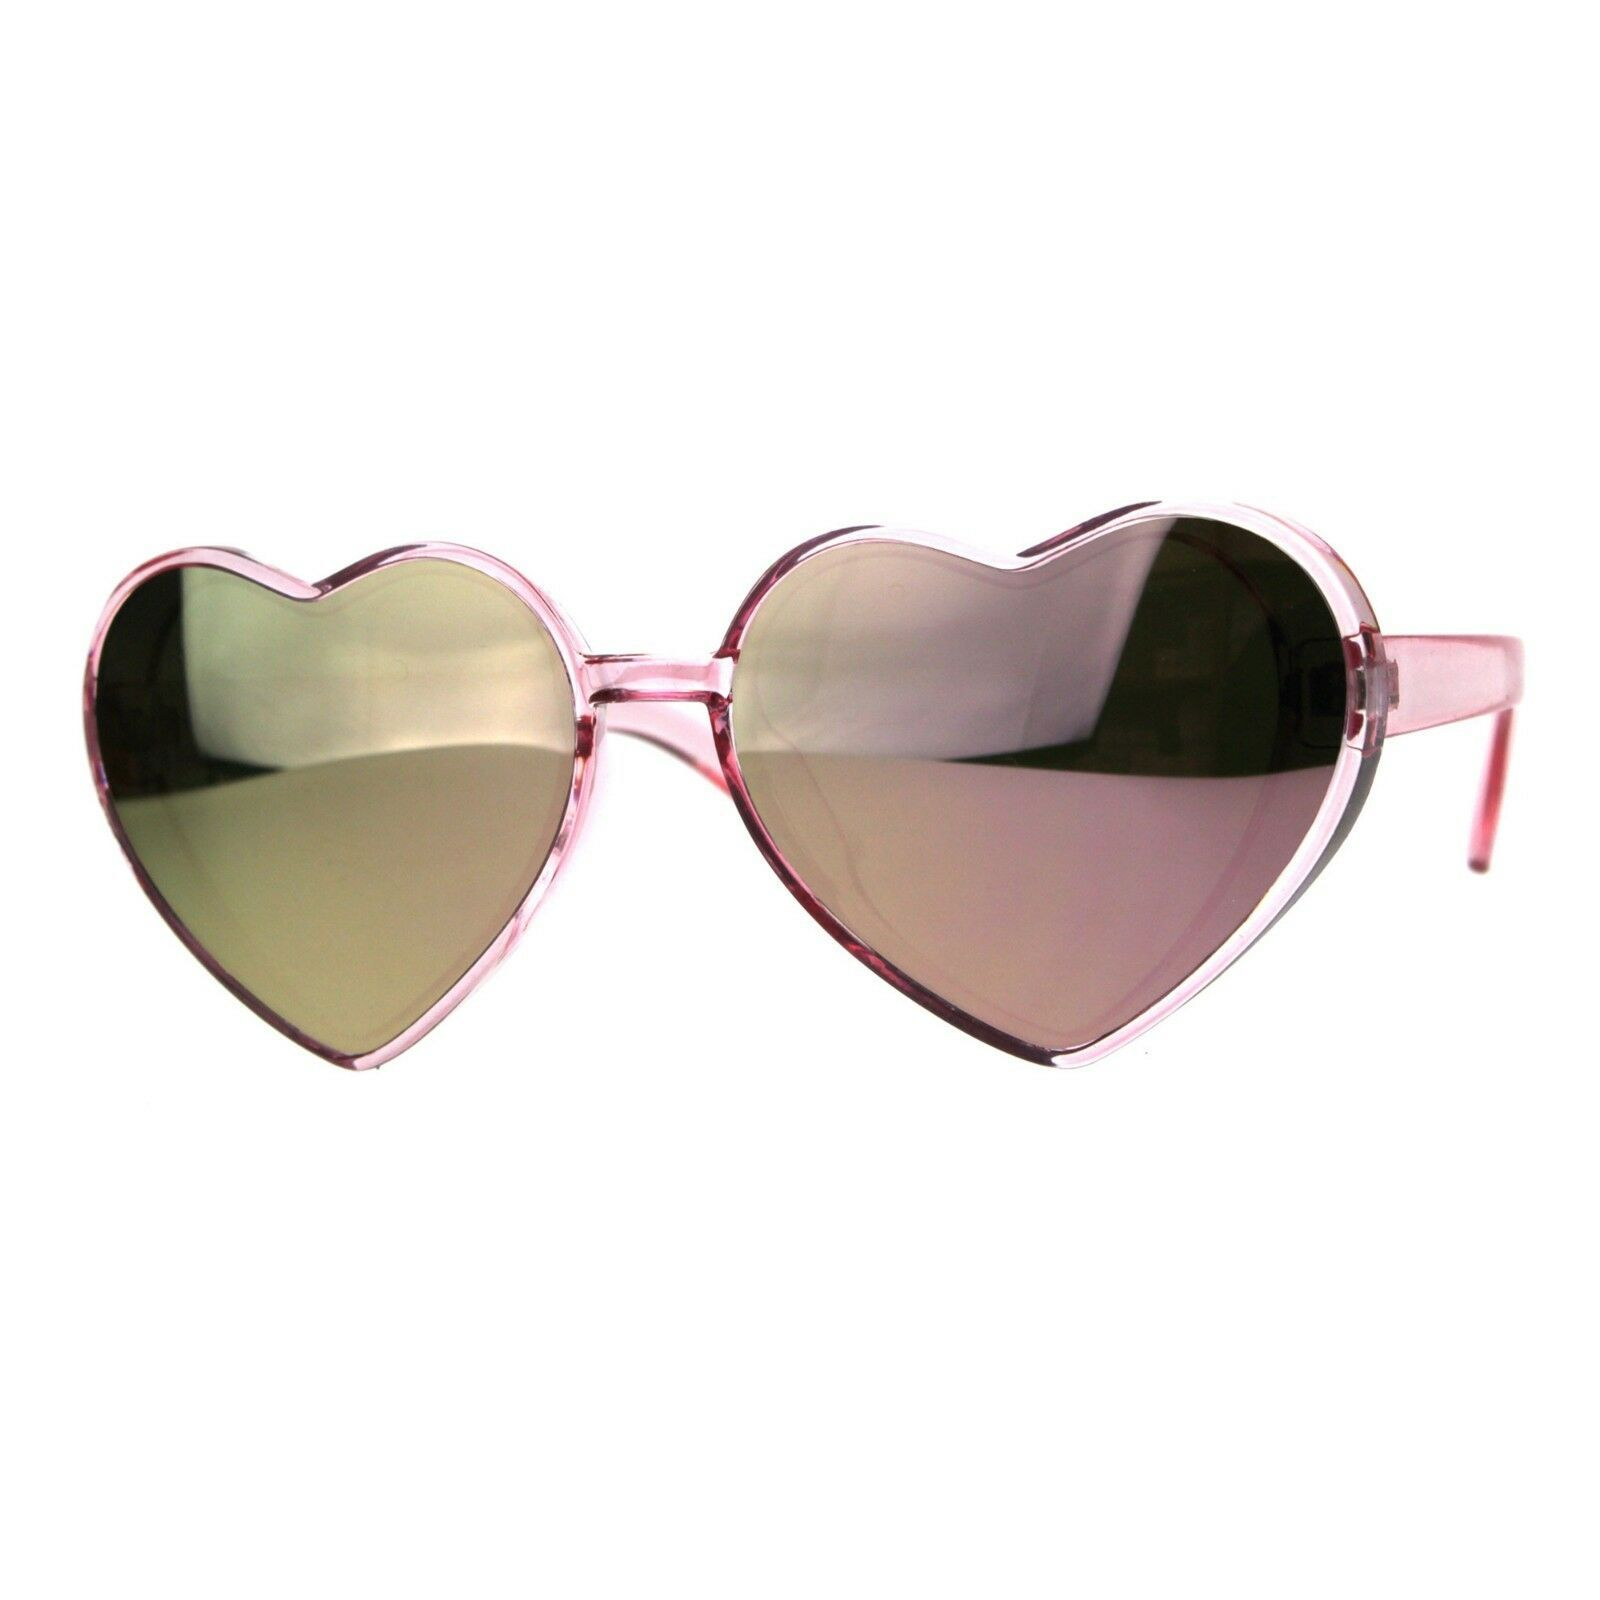 Oversized Heart Shape Sunglasses Womens Fashion Mirrored Lens Shades